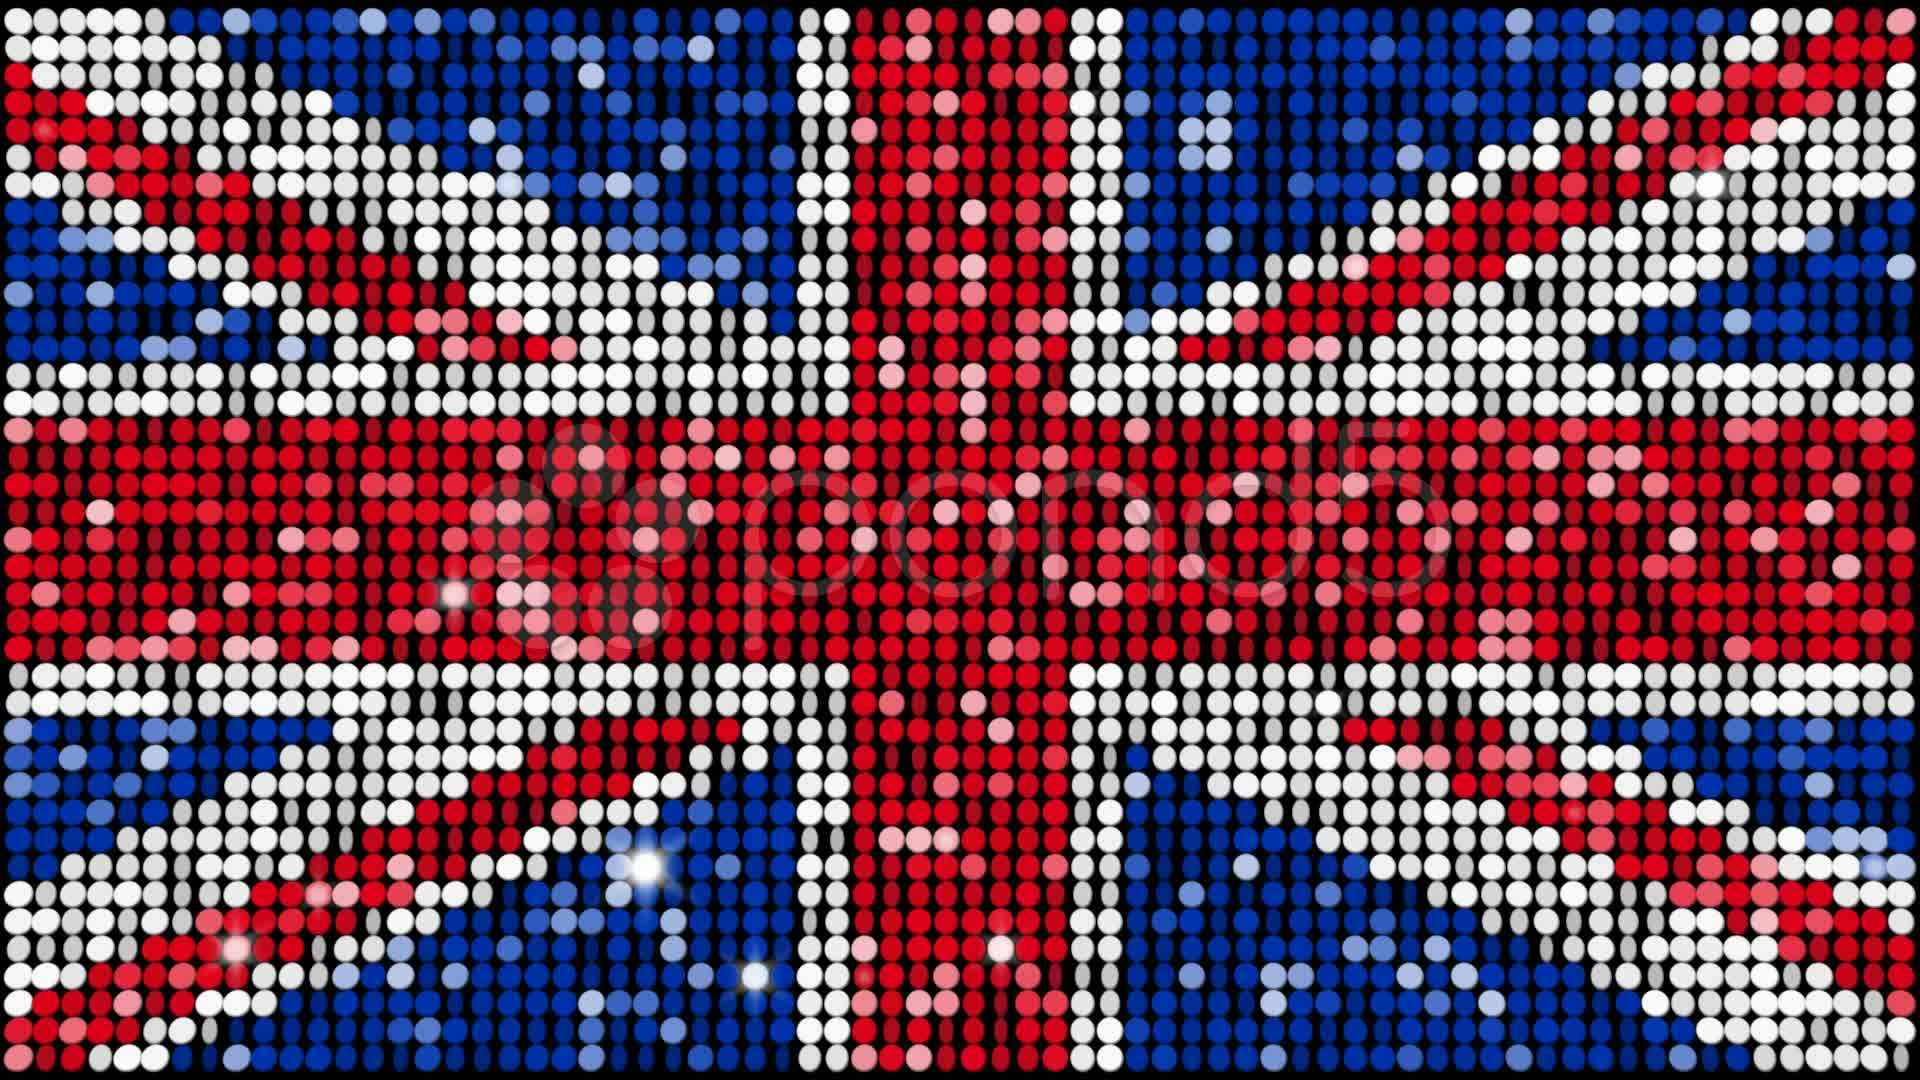 wallpapers backgrounds british - photo #44